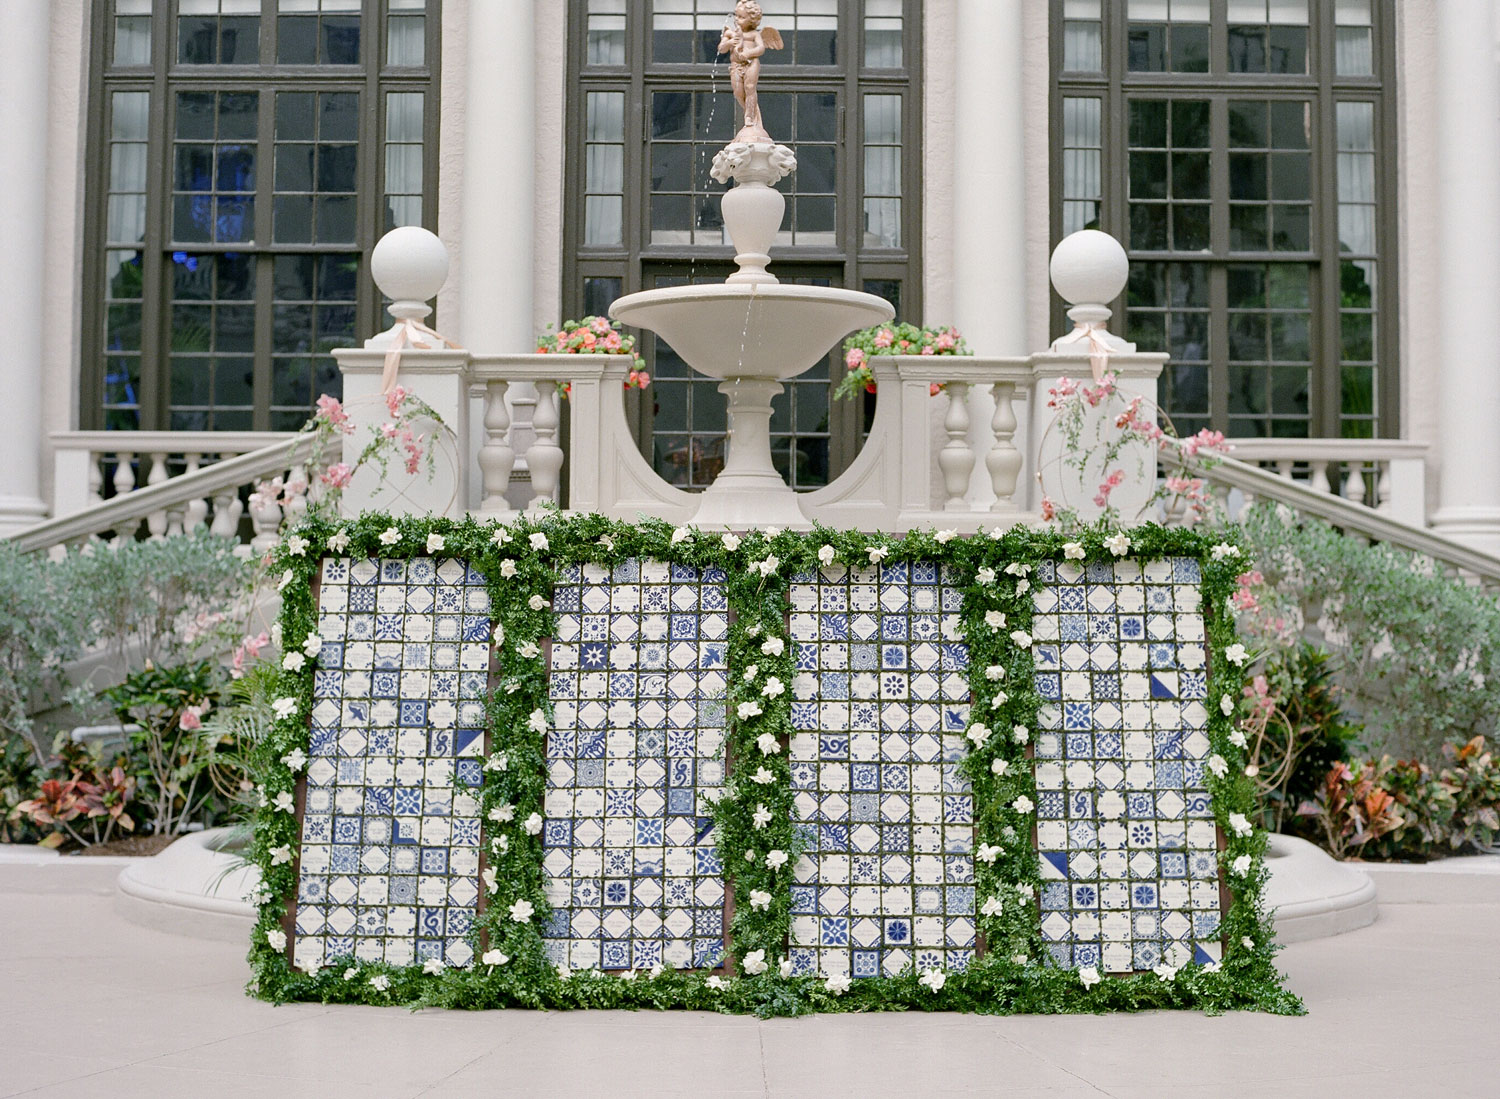 Escort card display greenery moss blue white tiles with seating assignment escort cards